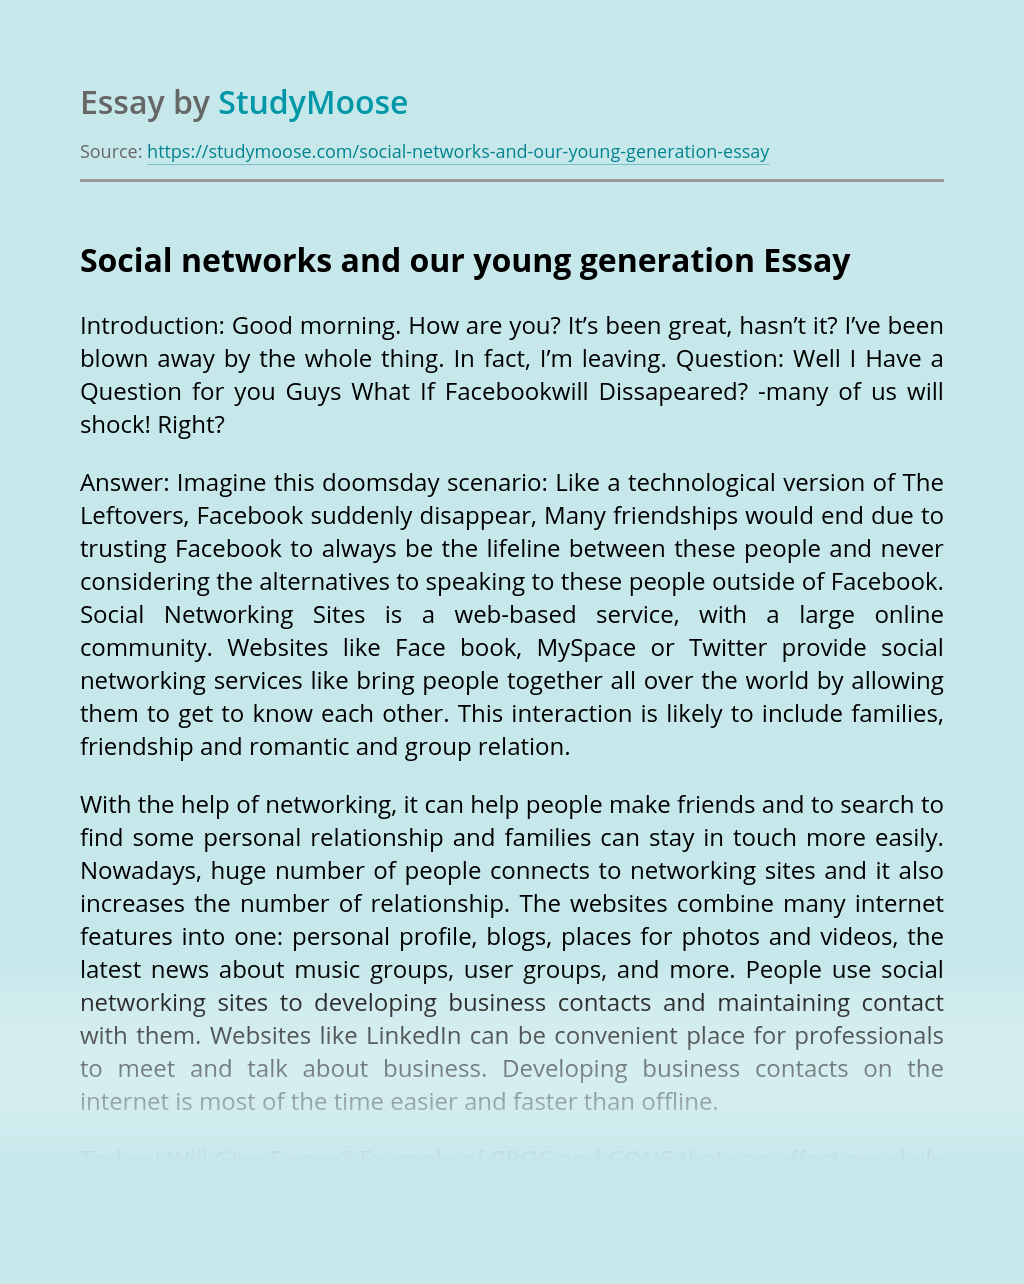 Social networks and our young generation